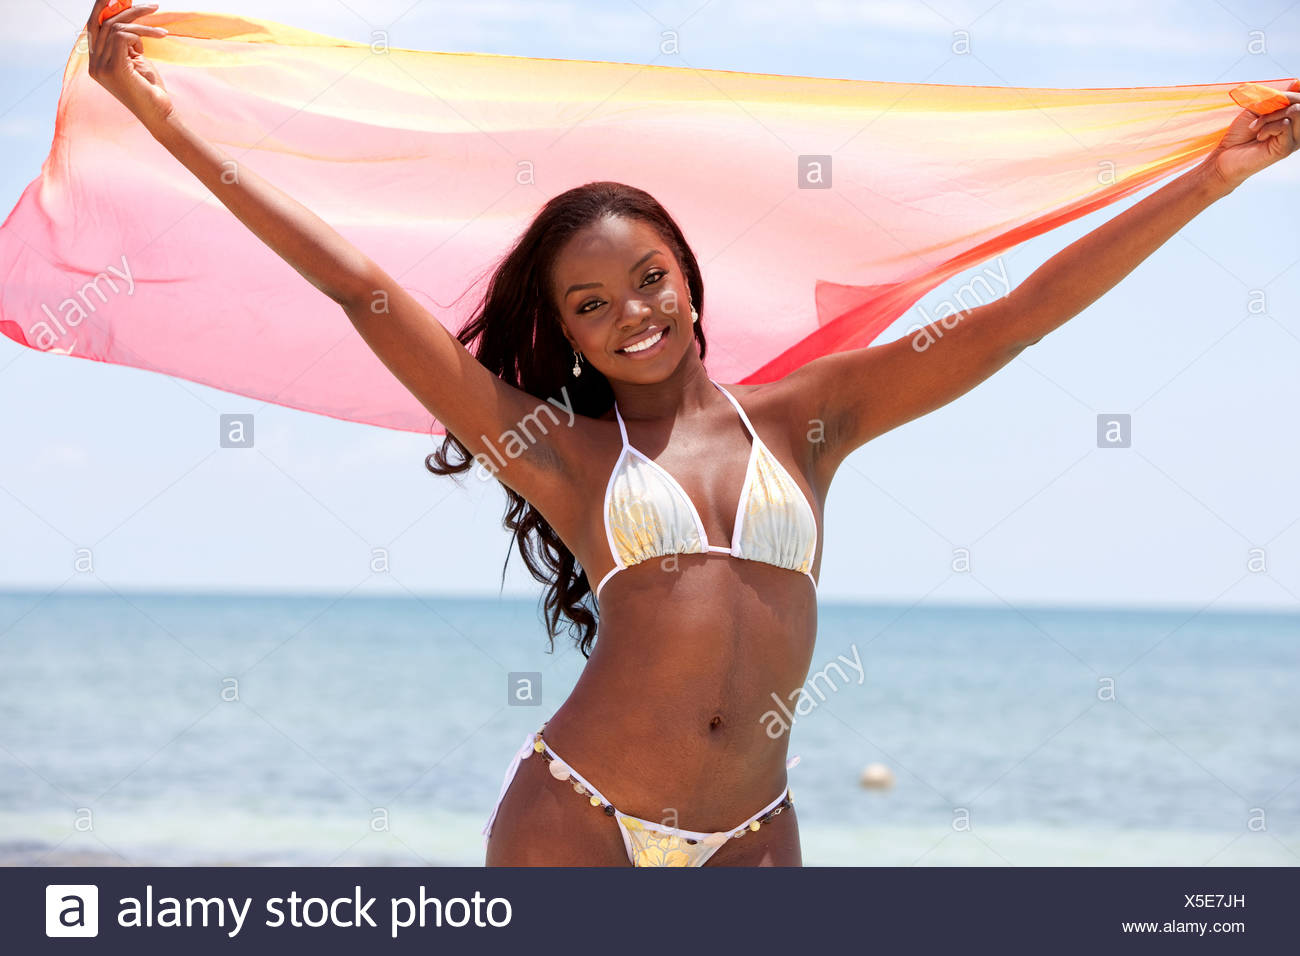 4c8297fa2c5ec beautiful black bikini woman having fun at the beach